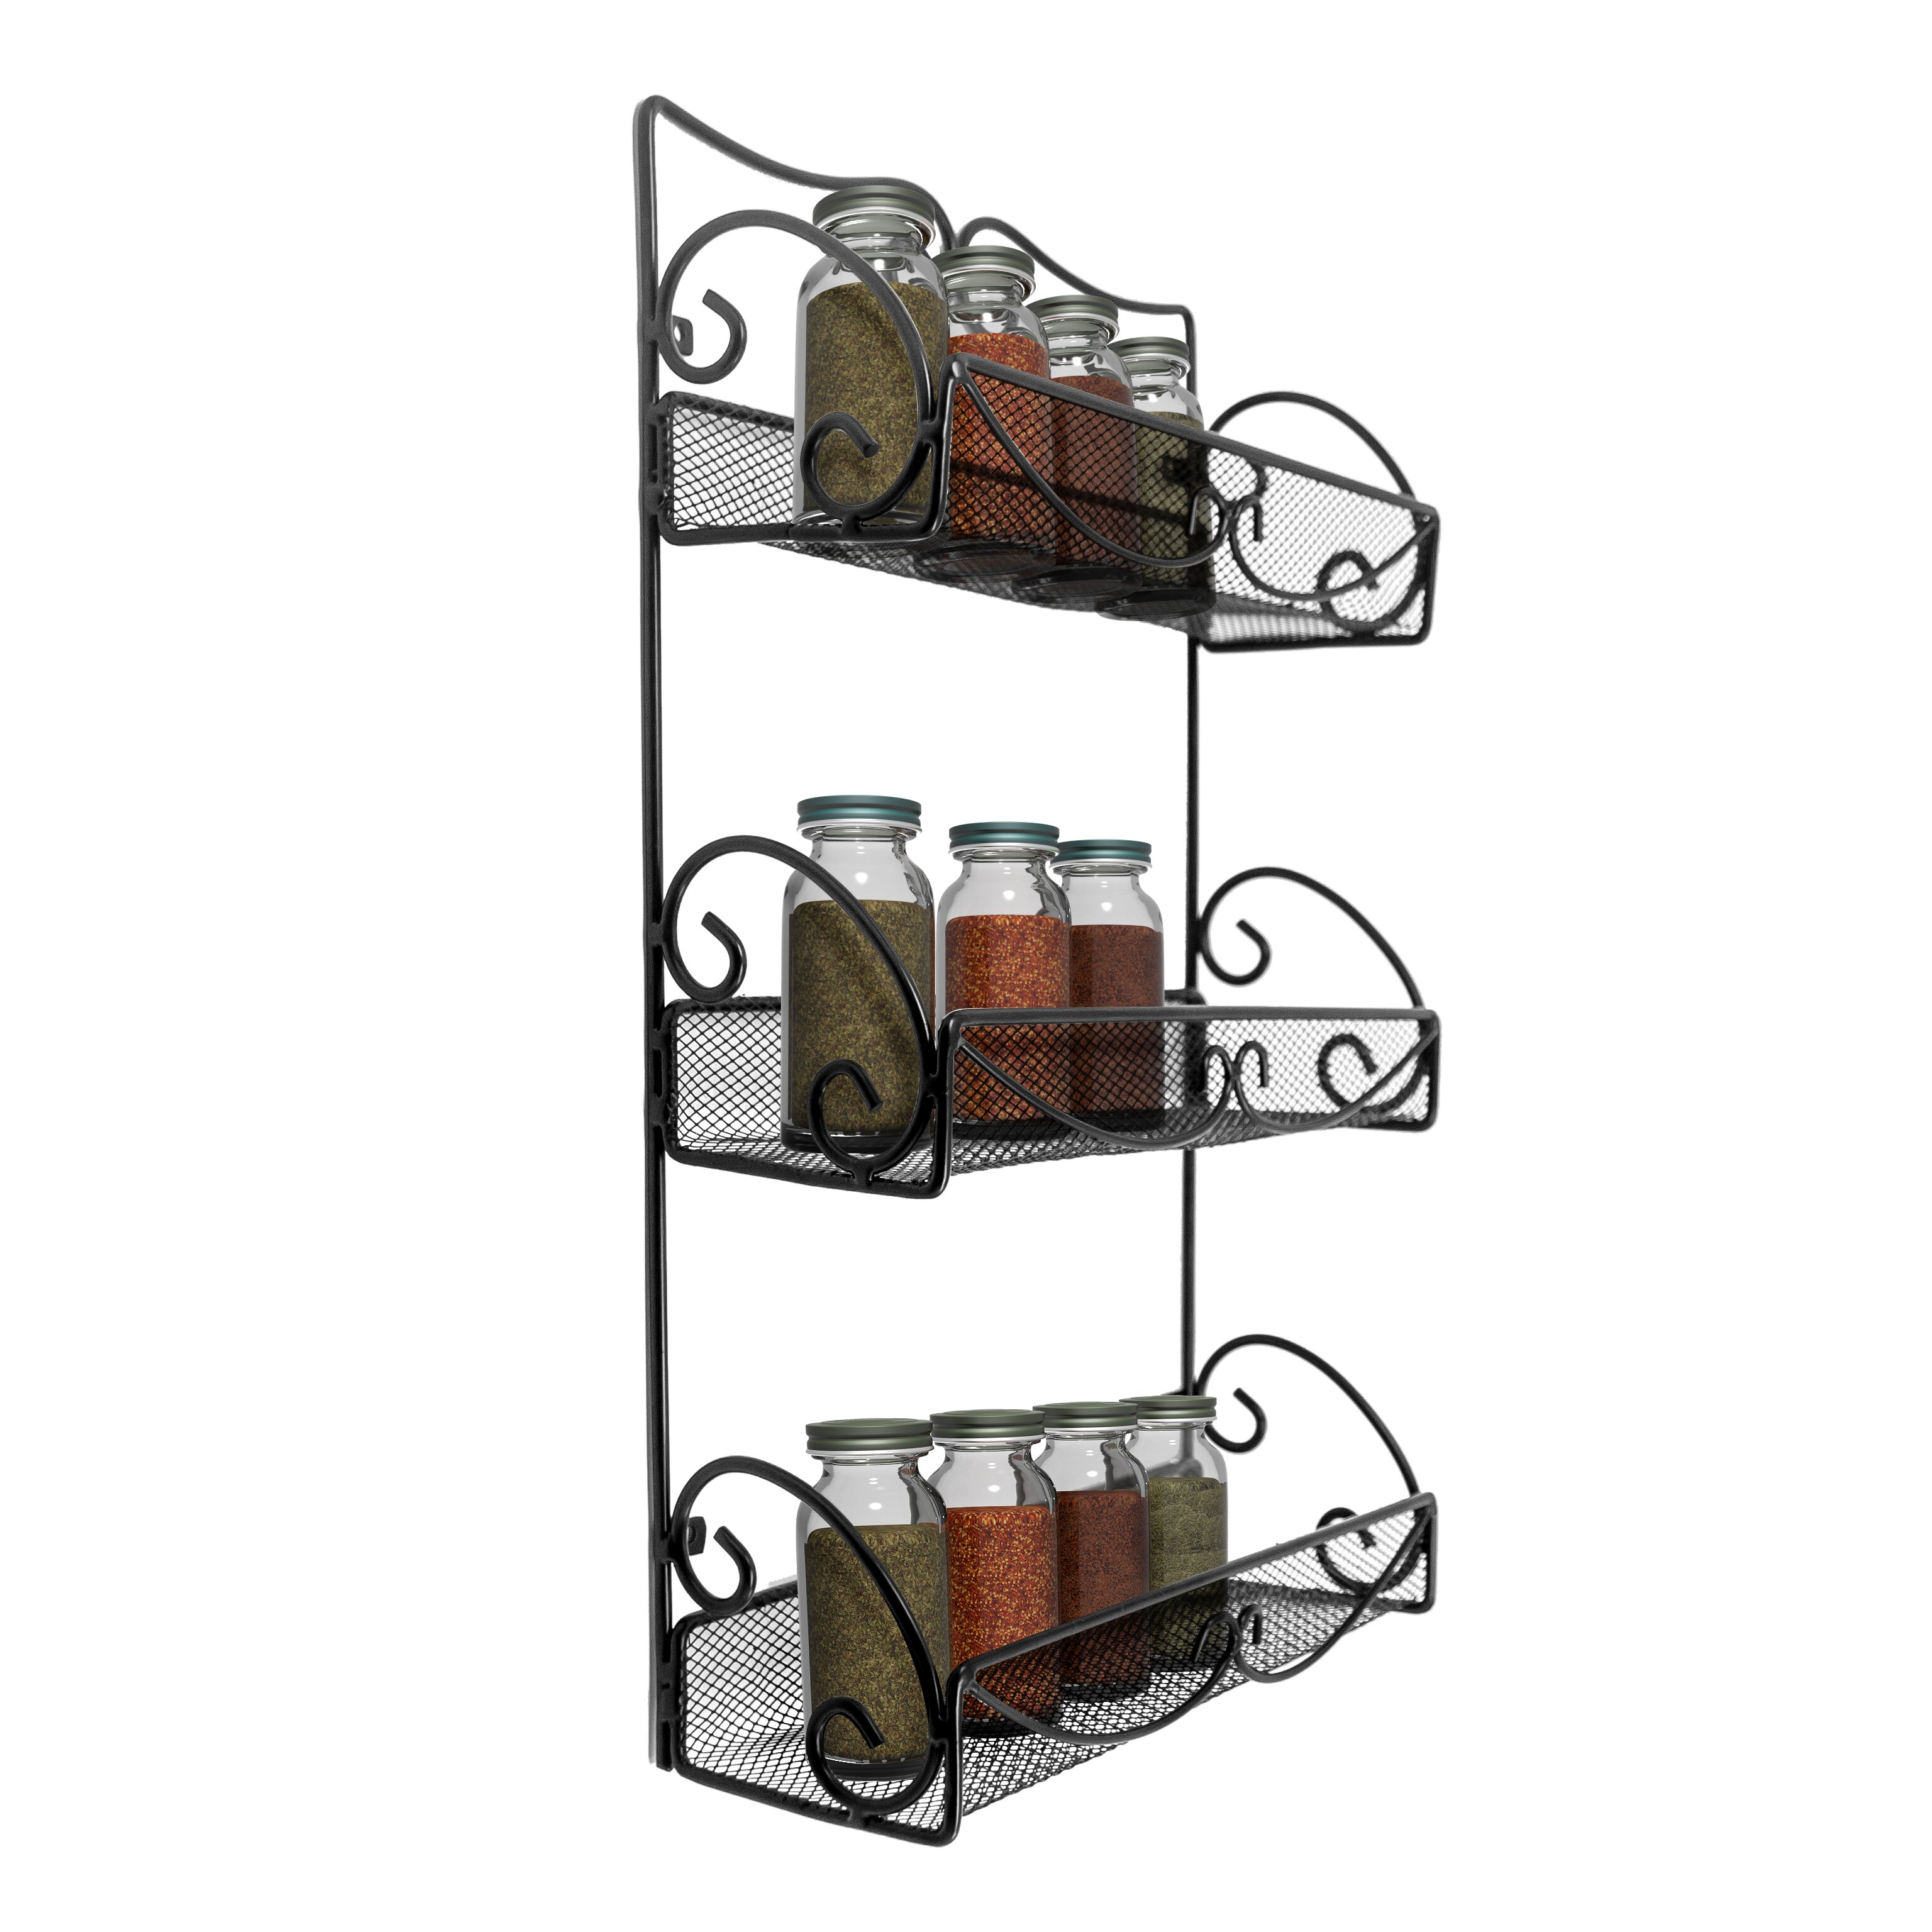 sorbus wall mounted spice rack reviews wayfair. Black Bedroom Furniture Sets. Home Design Ideas